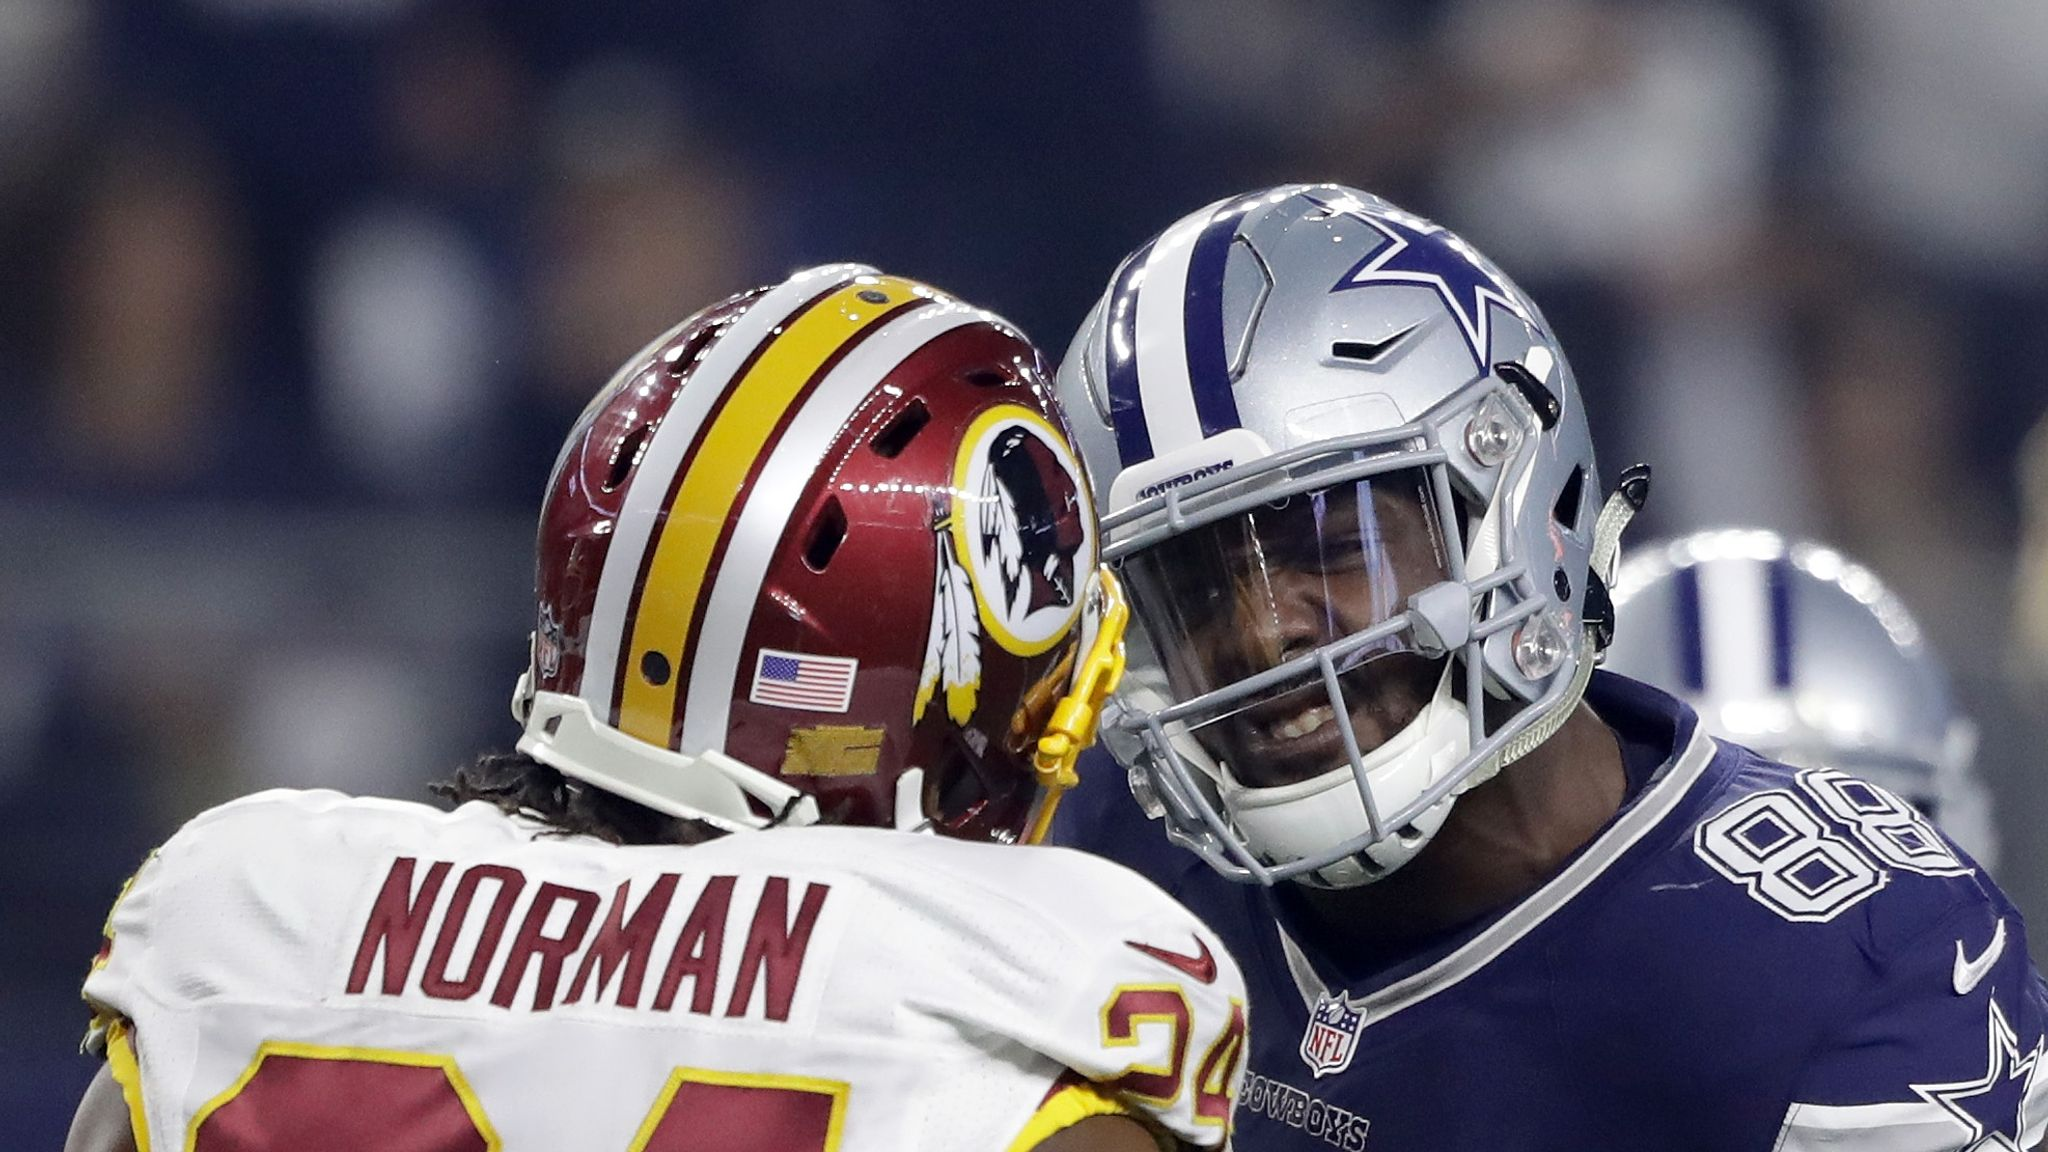 Dez Bryant And Josh Norman Come Helmet To Helmet During Game